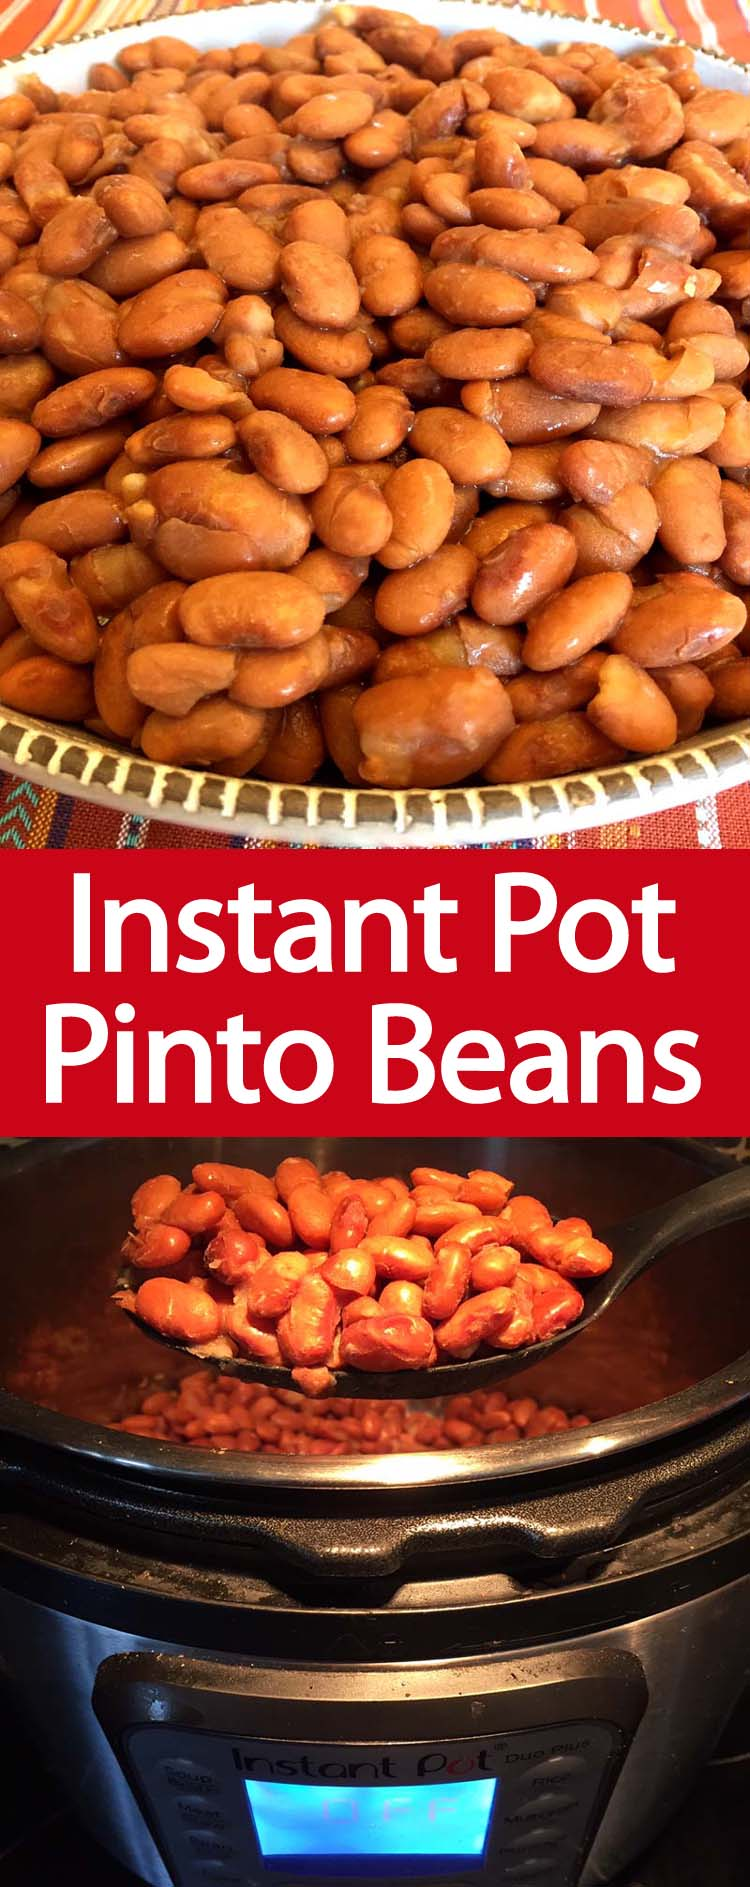 These Instant Pot pinto beans are amazing! No soaking needed, so easy! Once you try cooking pinto beans in the Instant Pot, you'll never want to eat the canned ones!